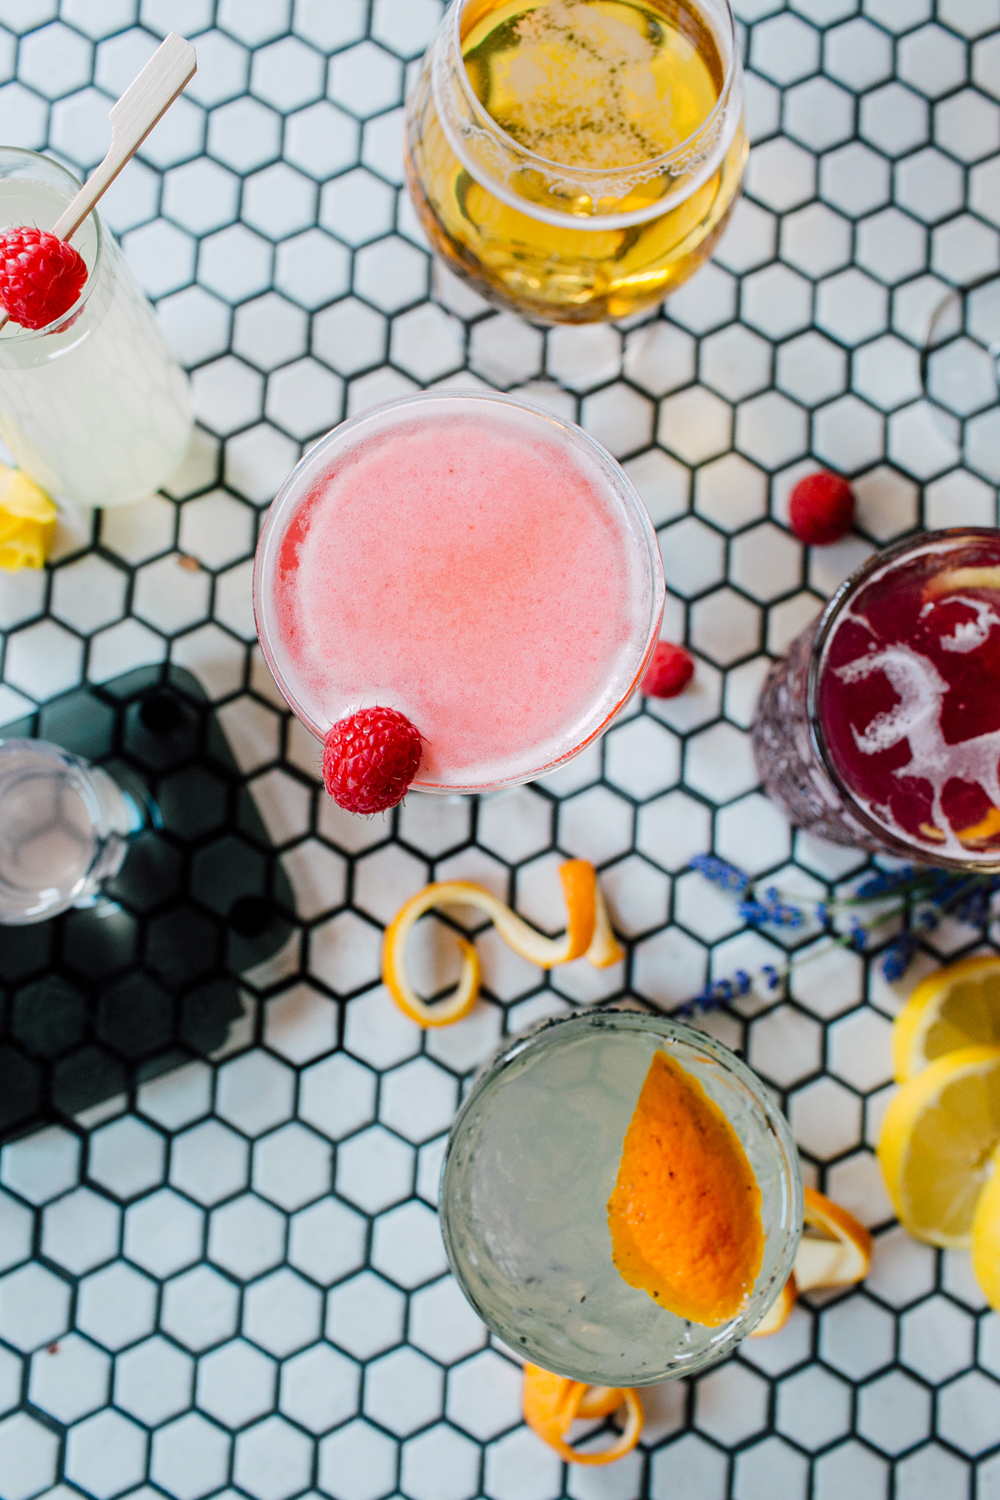 013-bellingham-food-stylist-food-photographer-katheryn-moran-photography-galloways-cocktail-bar-fairhaven.jpg